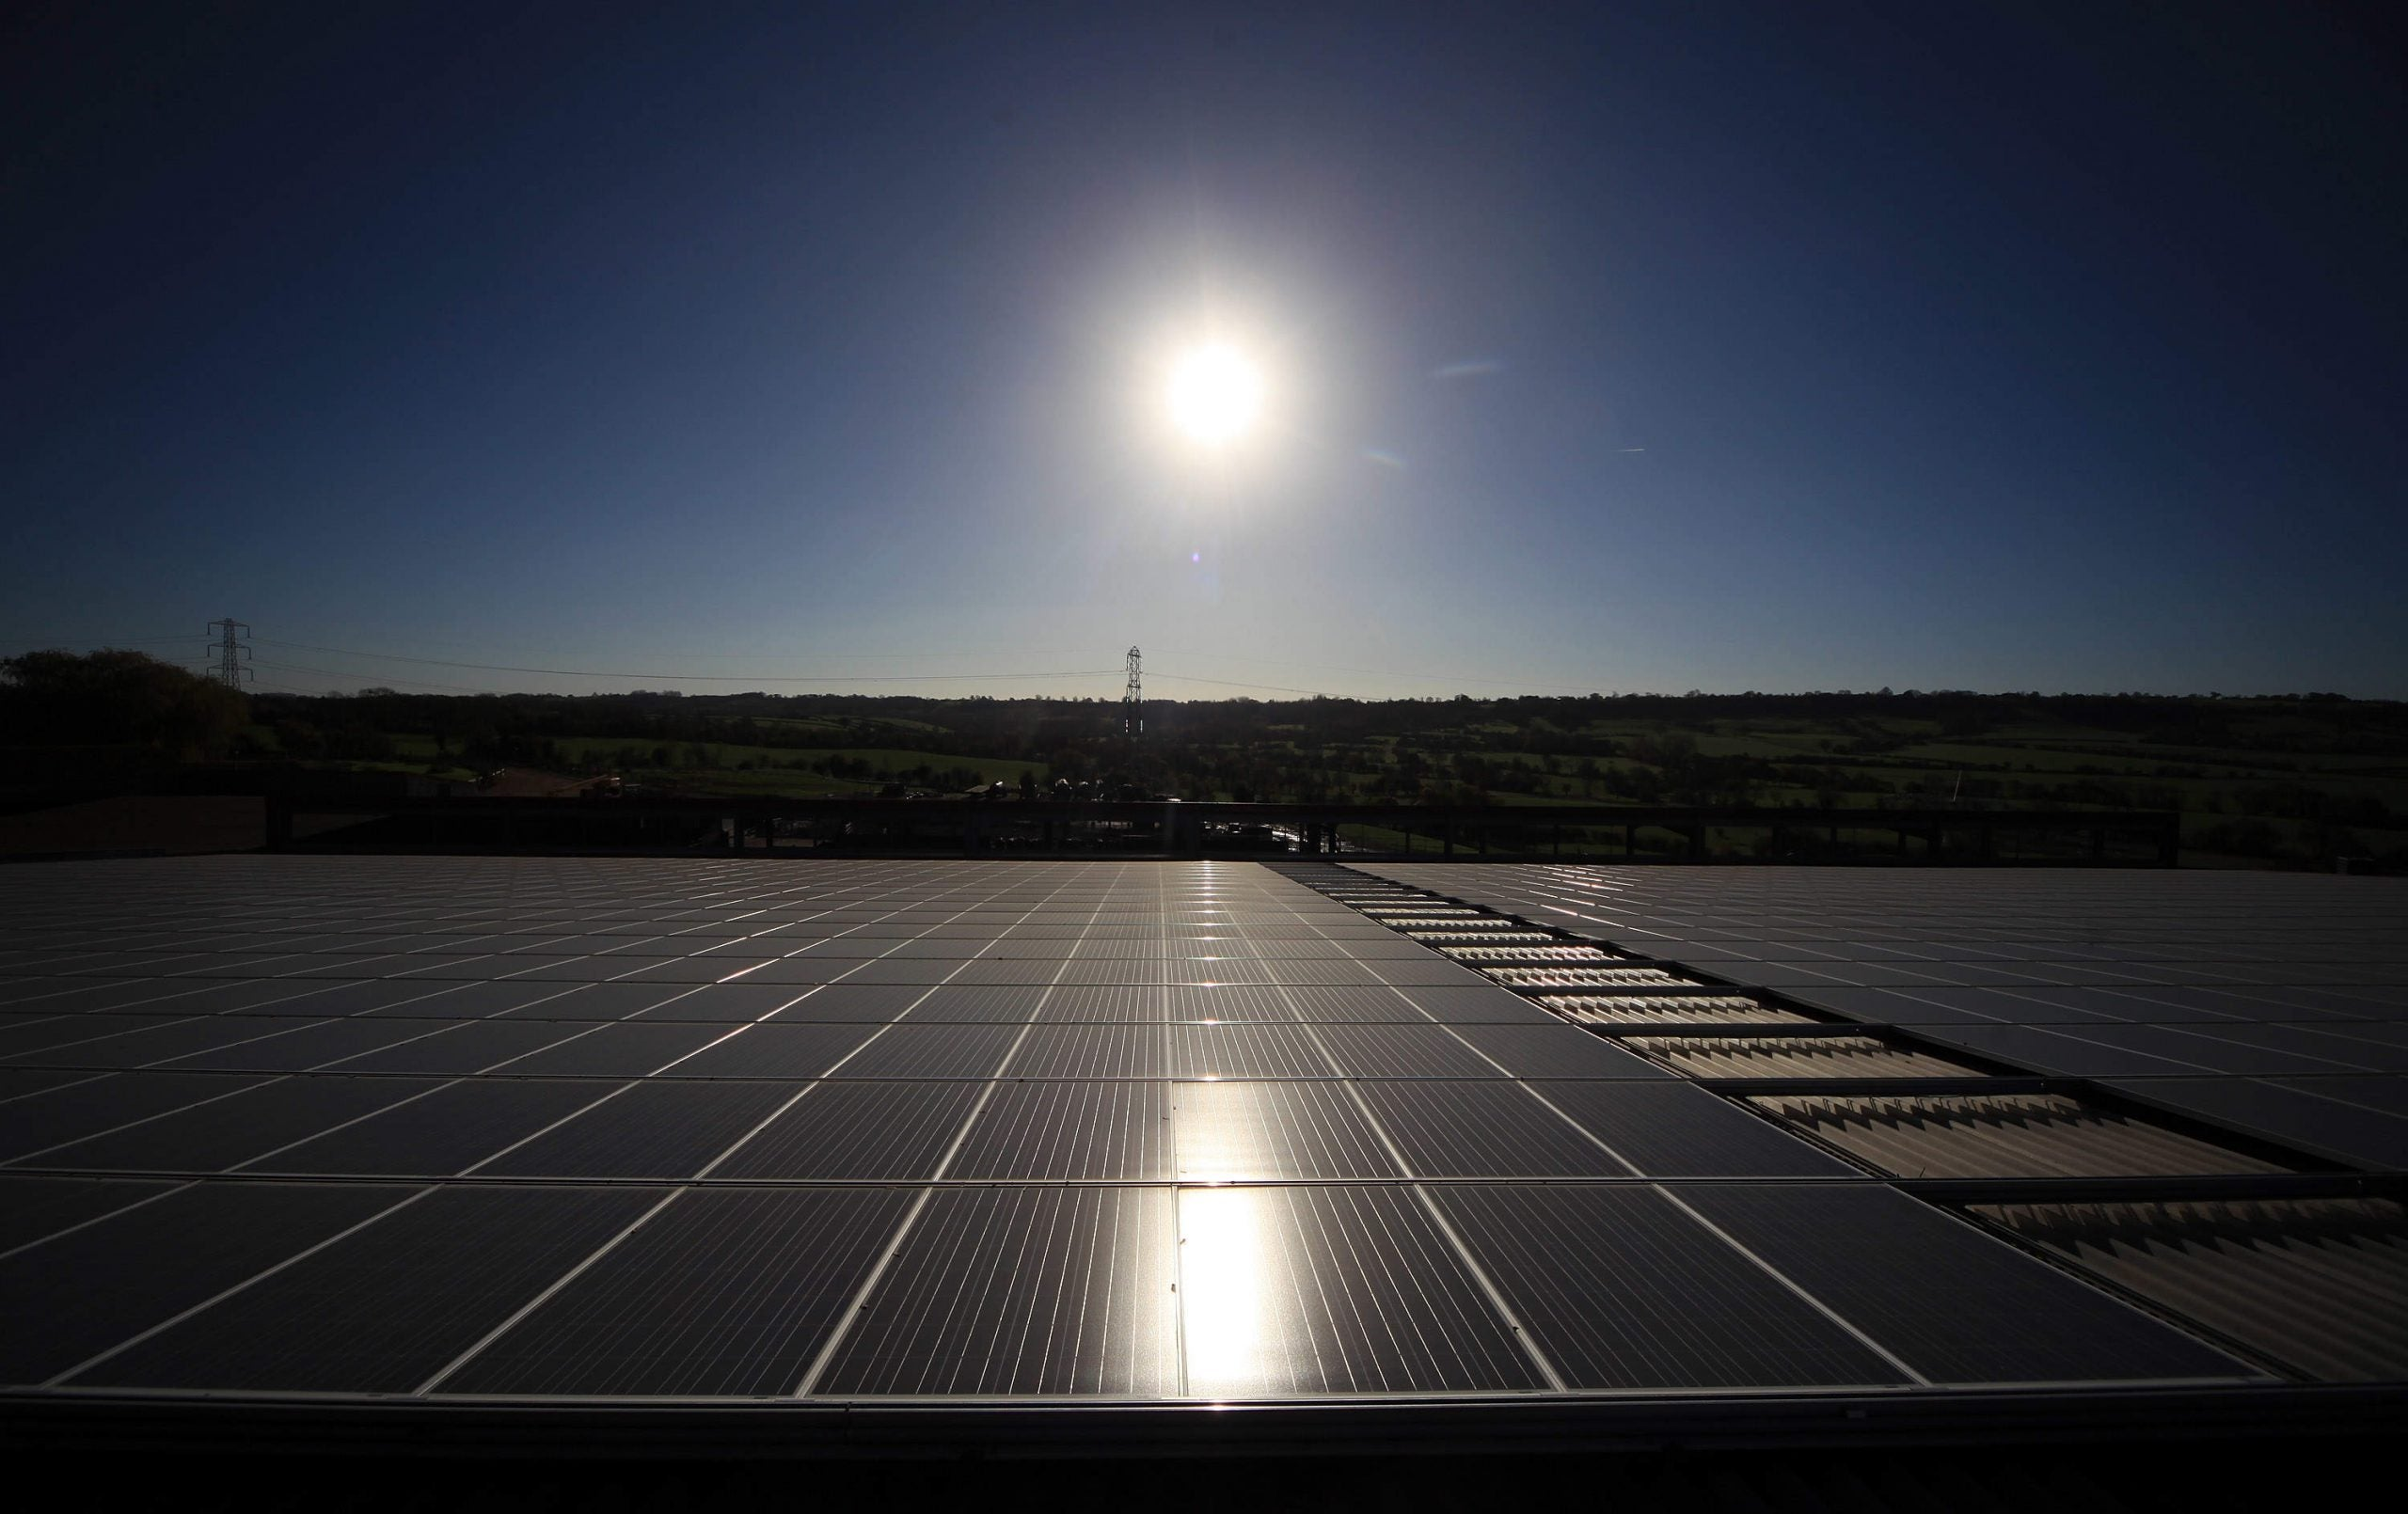 The lights are going out for solar energy